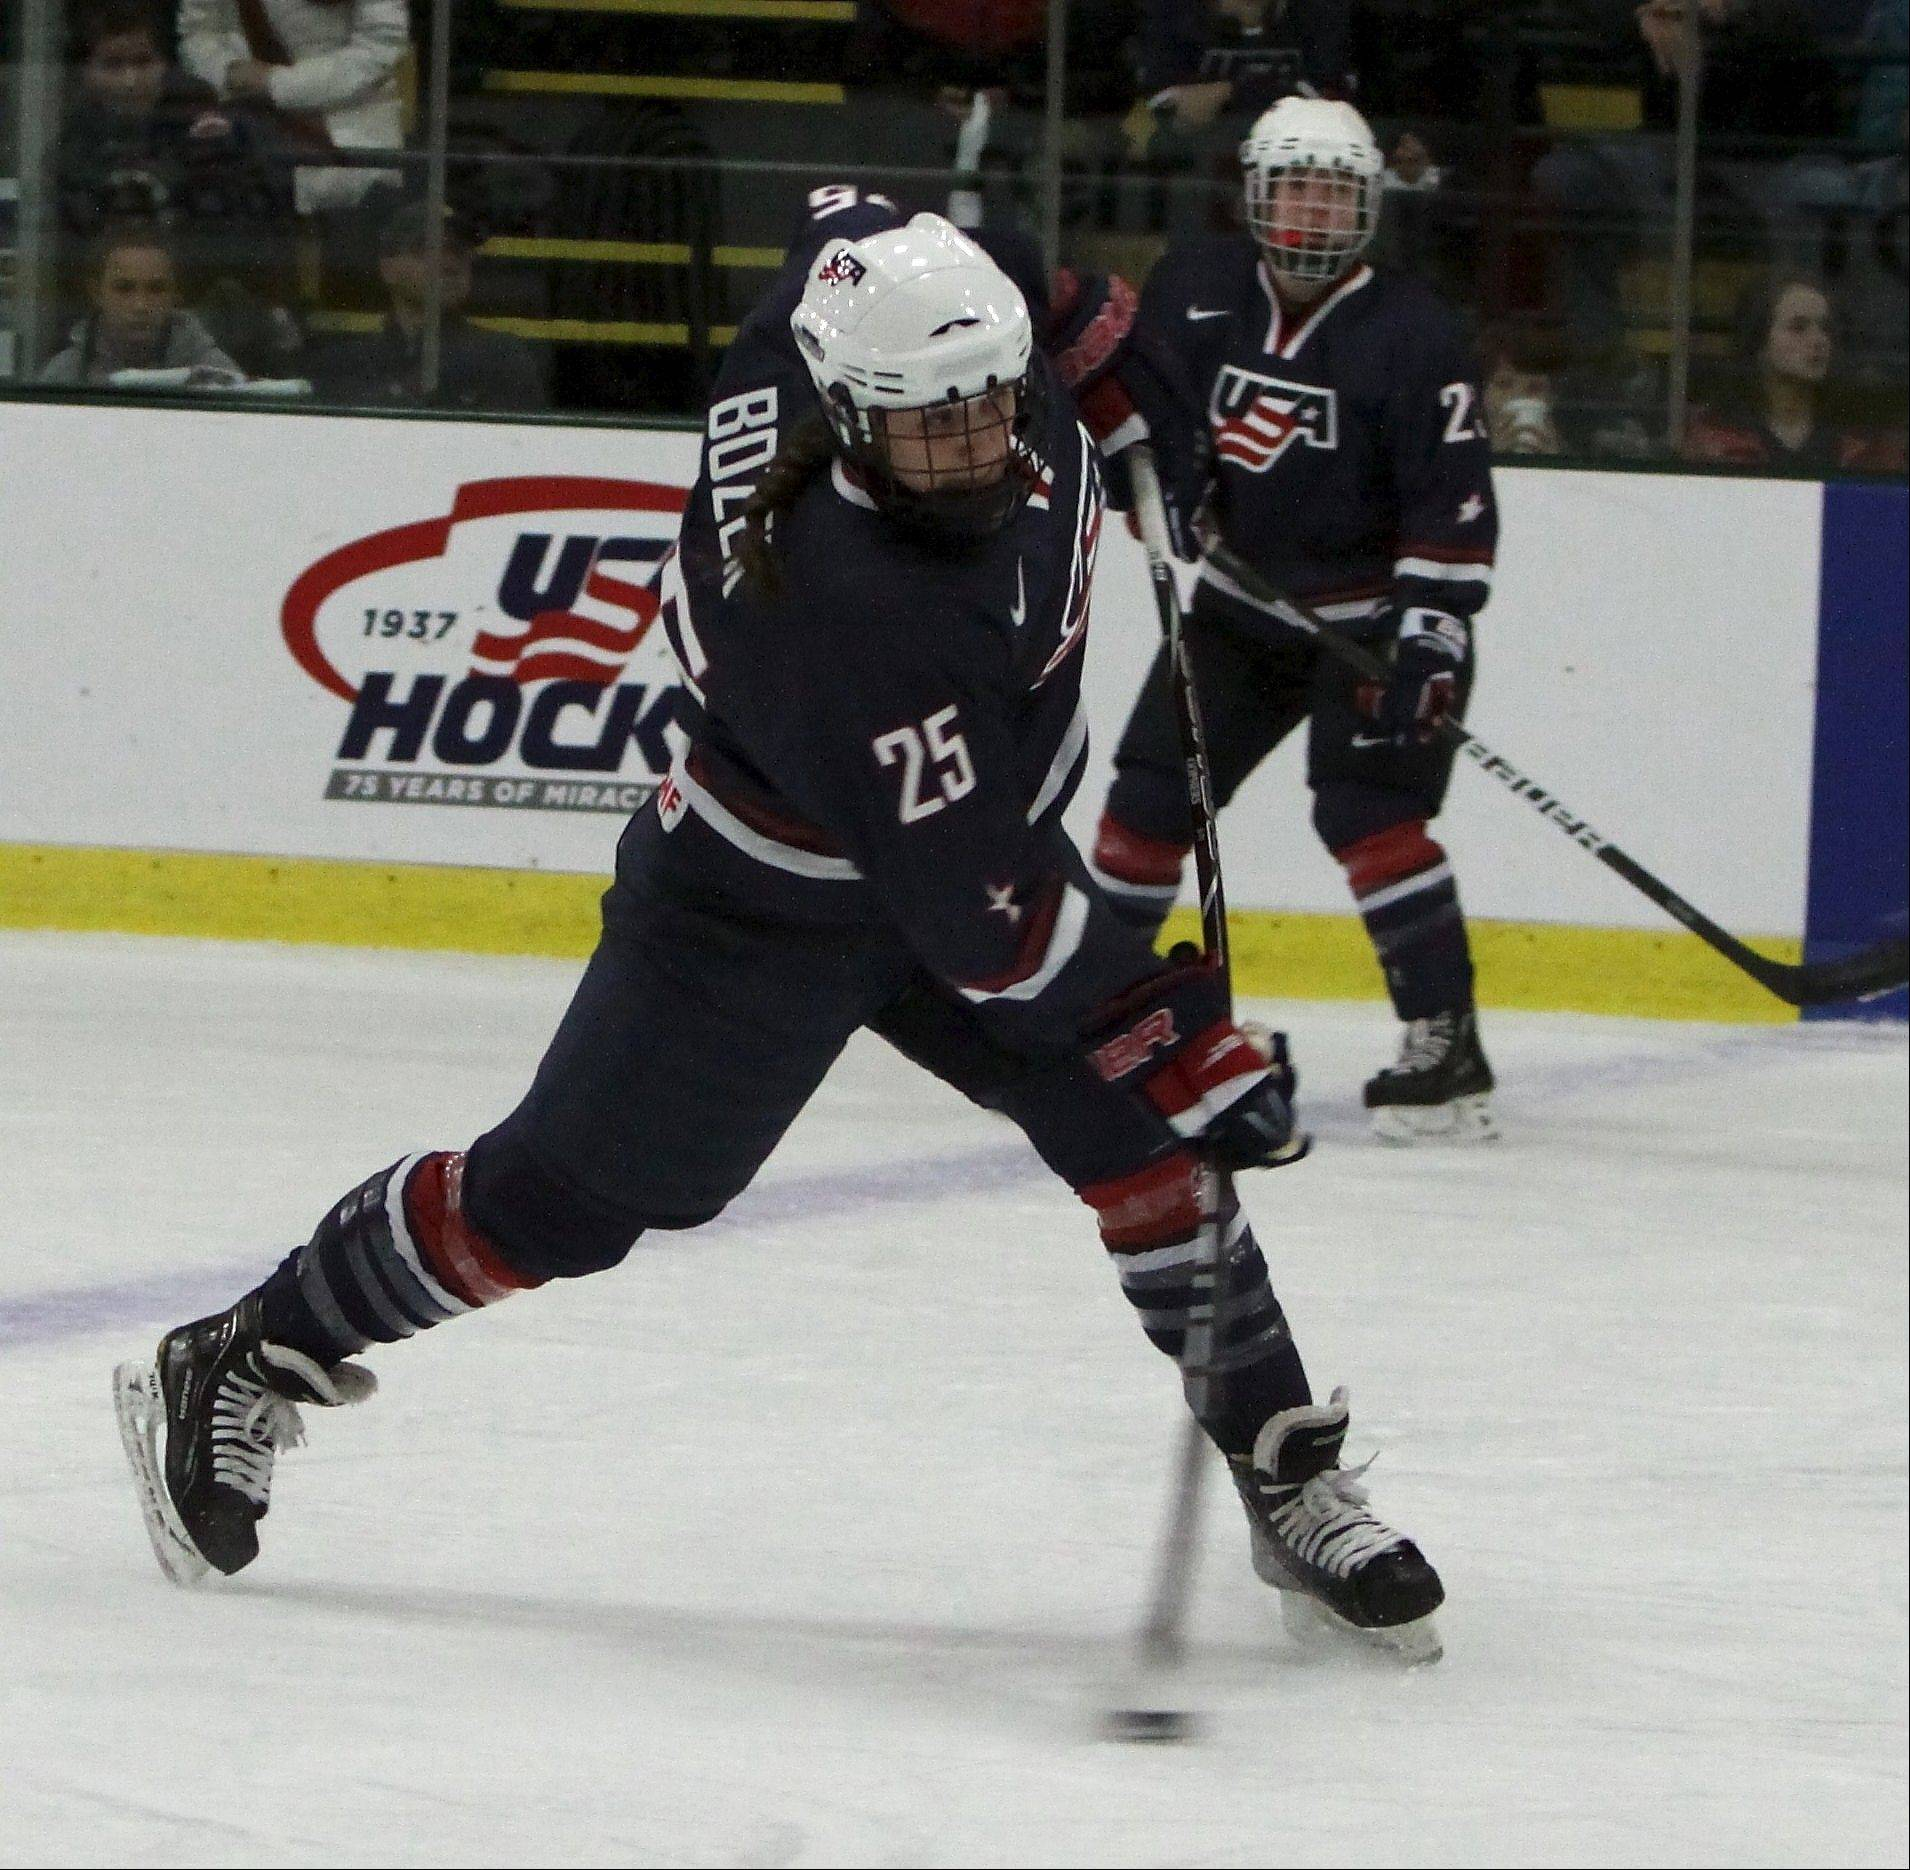 Megan Bozek skates for the U.S. women's team in 2012.